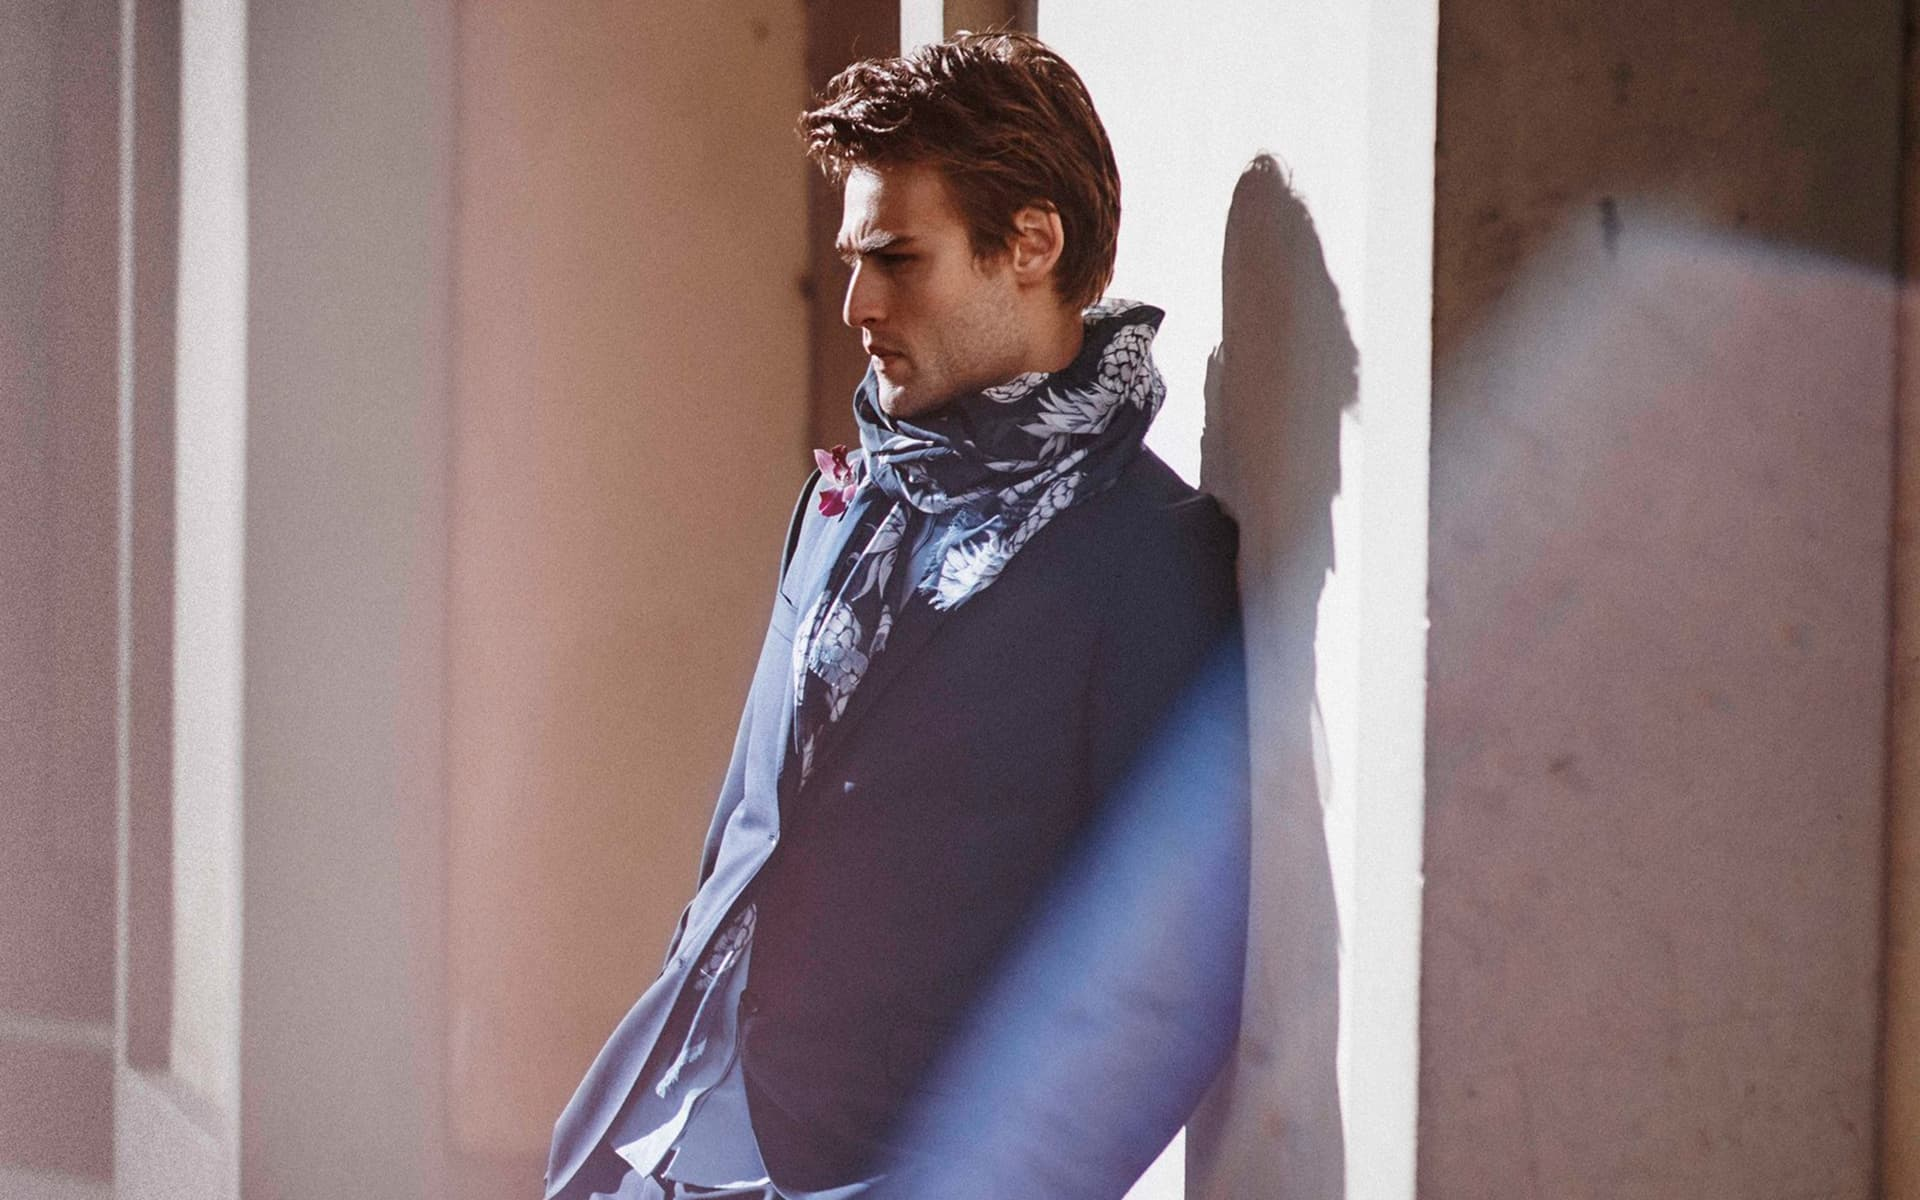 Douglas Booth style picture 2016